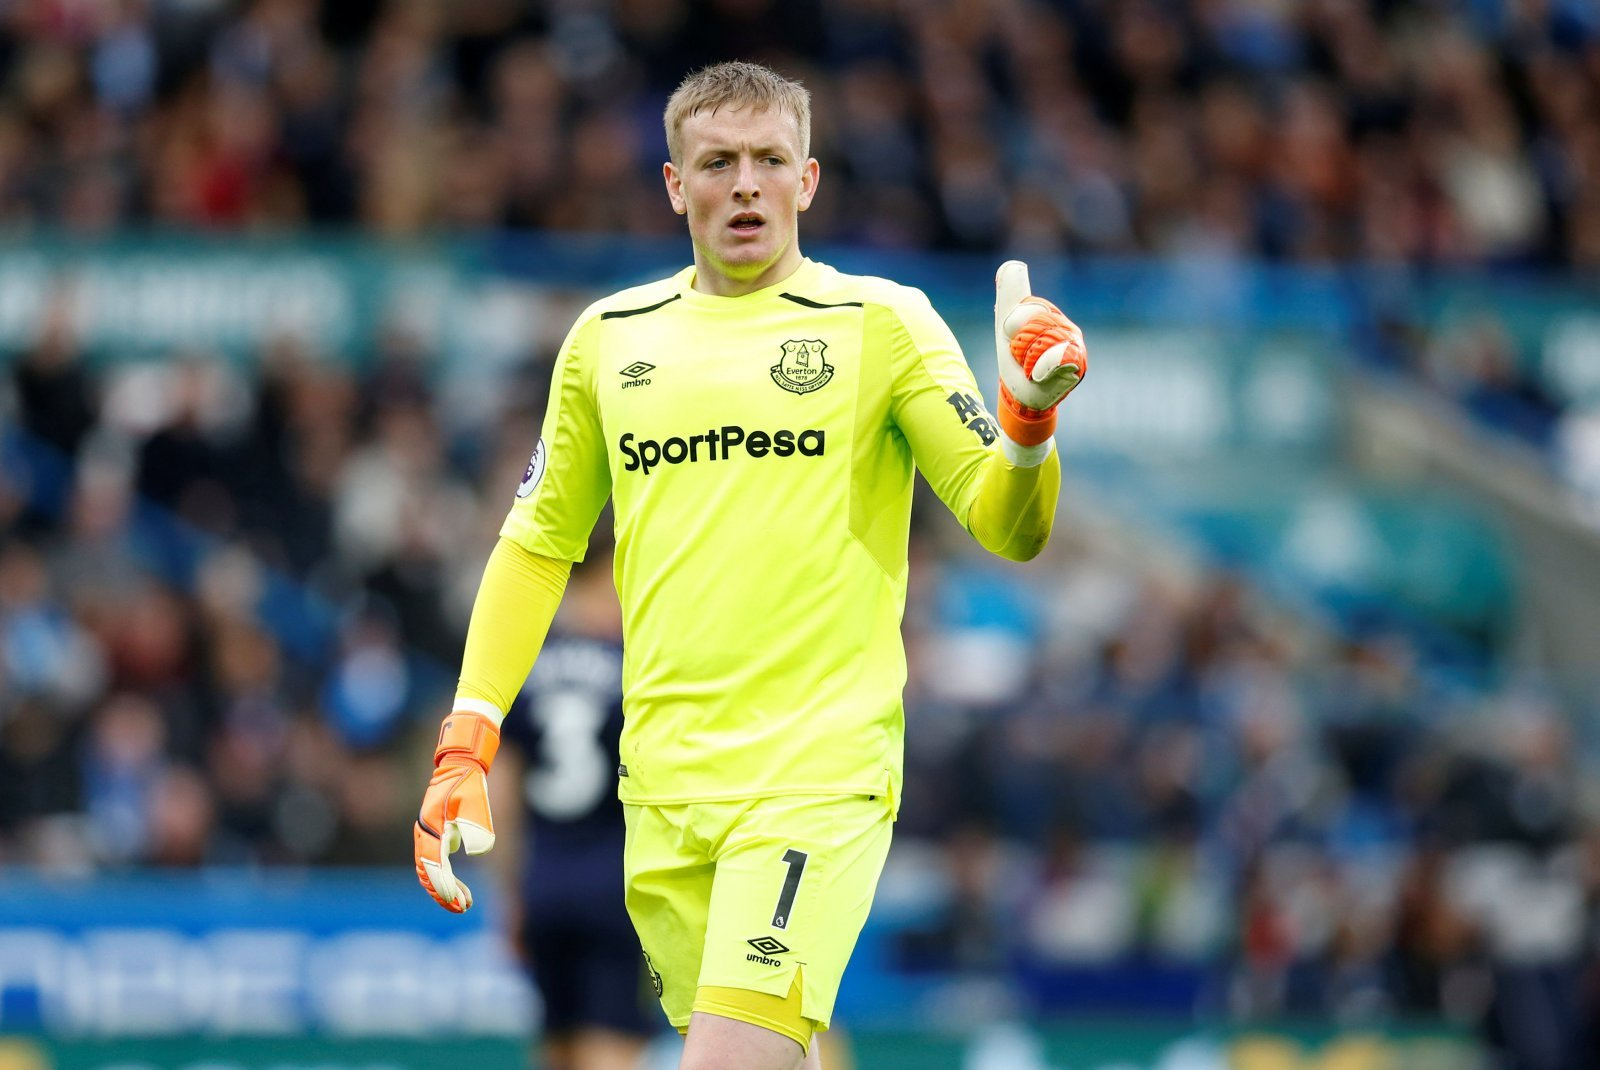 Everton must say no to Chelsea again and reject any approach for Pickford